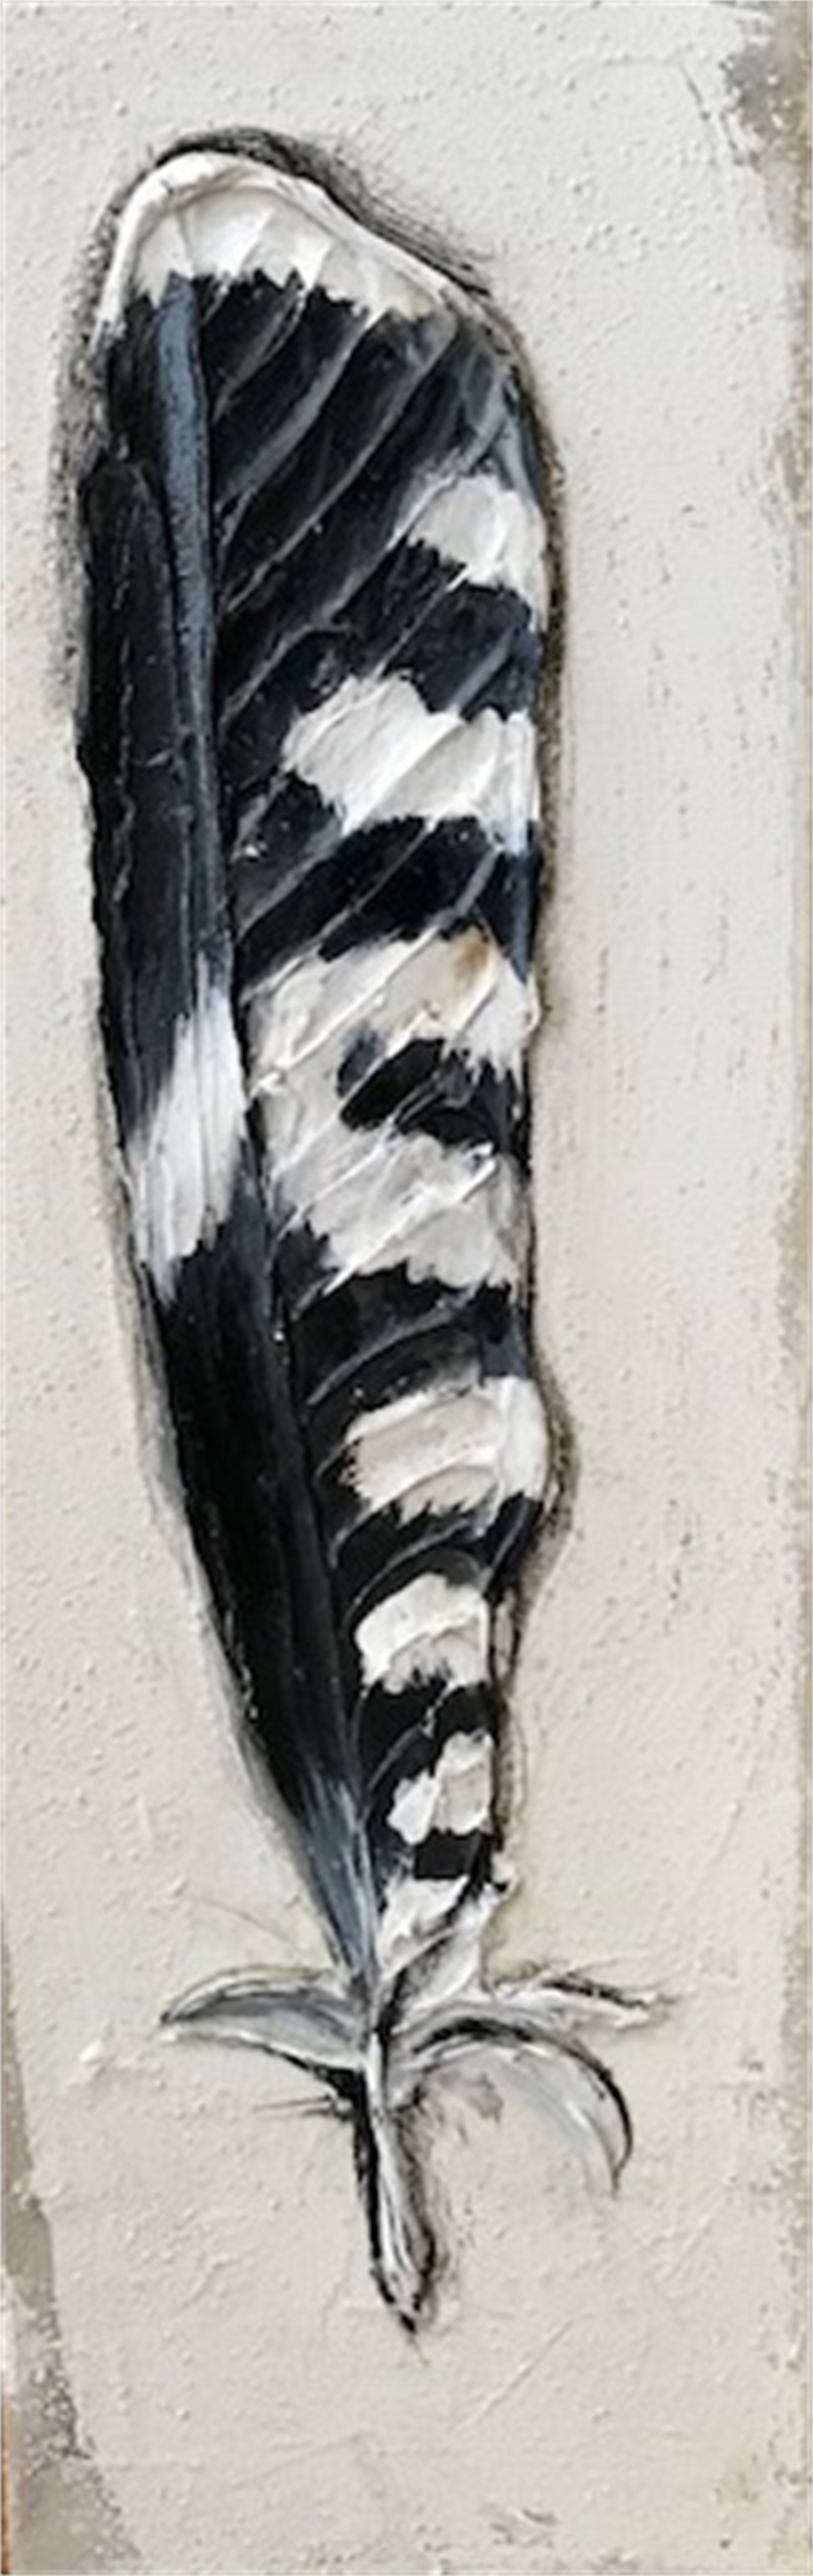 Woodpecker by Sherry Cook